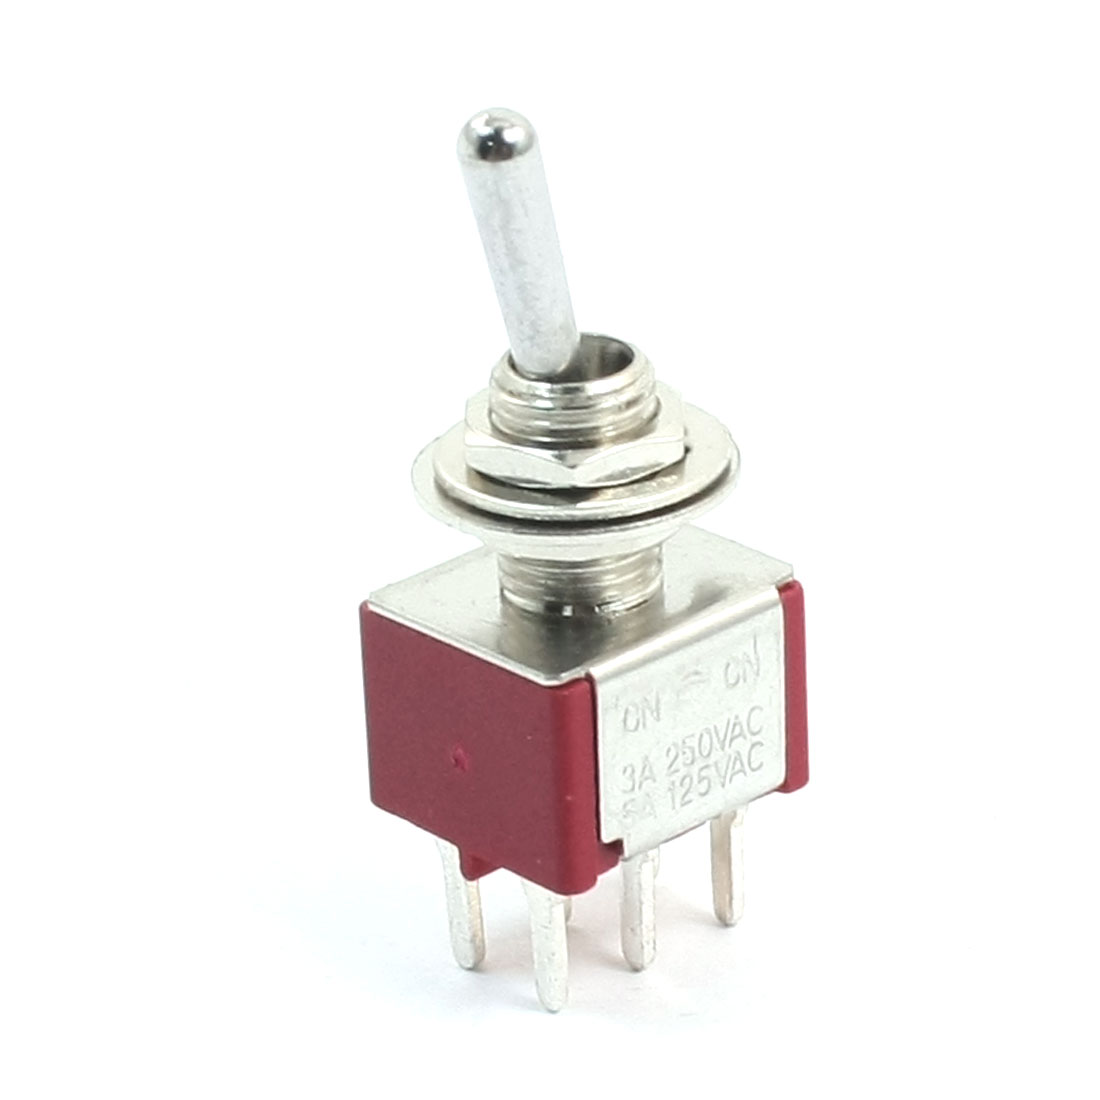 AC 250V 3A 125V 5A DPDT 2 Way 6mm Panel Cutout Dia Locking Toggle Switch